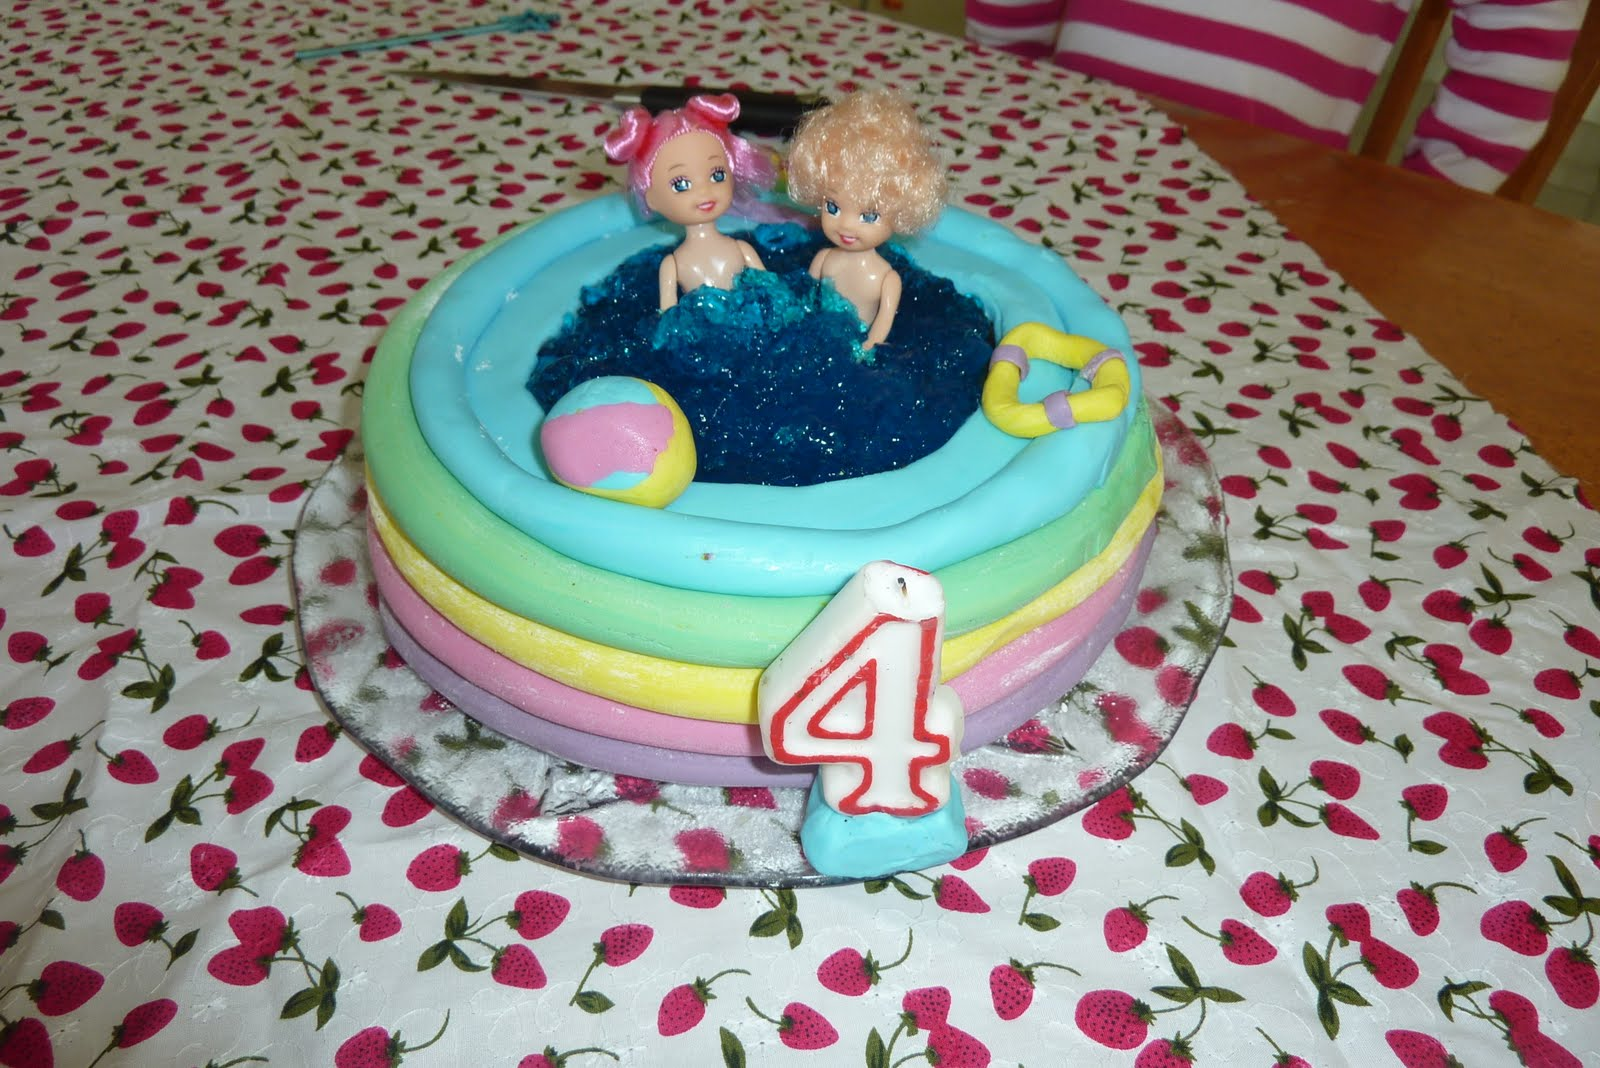 Times Fun When Youre Having Flies Miss 4s Birthday Cakes